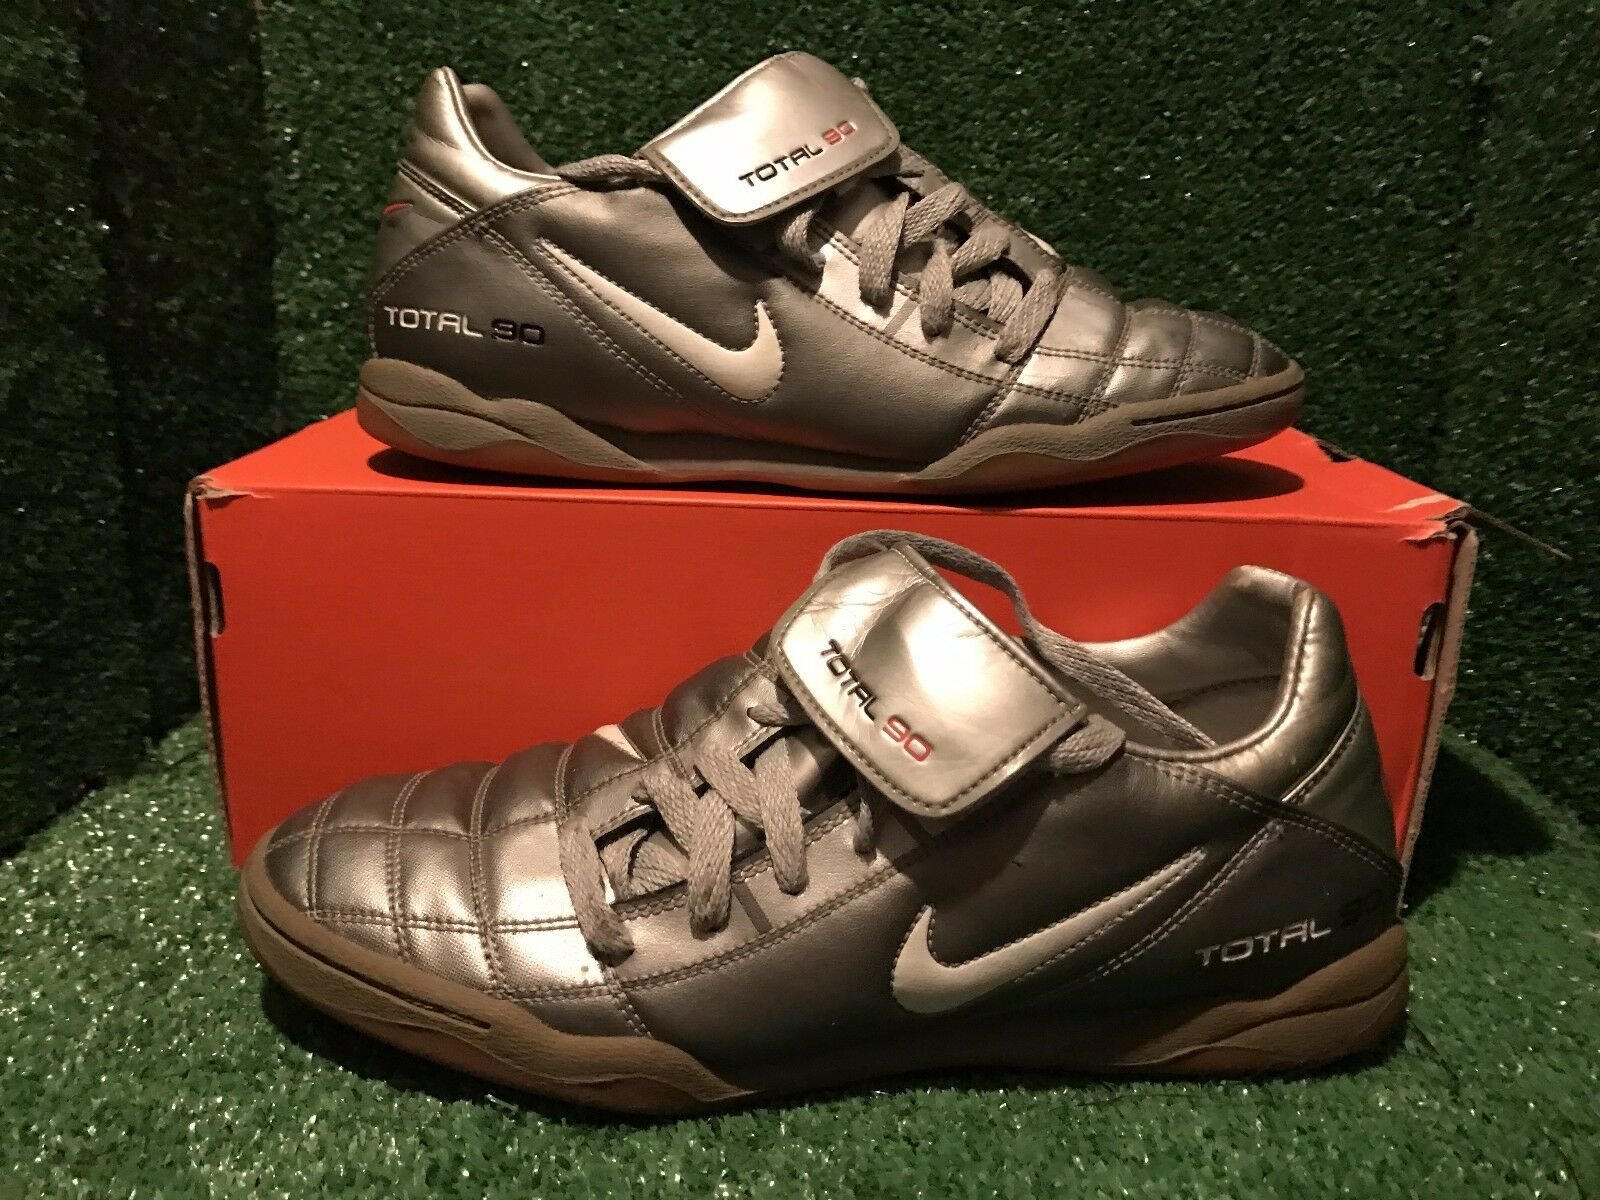 NIKE AIR MAX TOTAL 365 III T90 INDOOR TRAINERS Size 8,5 42